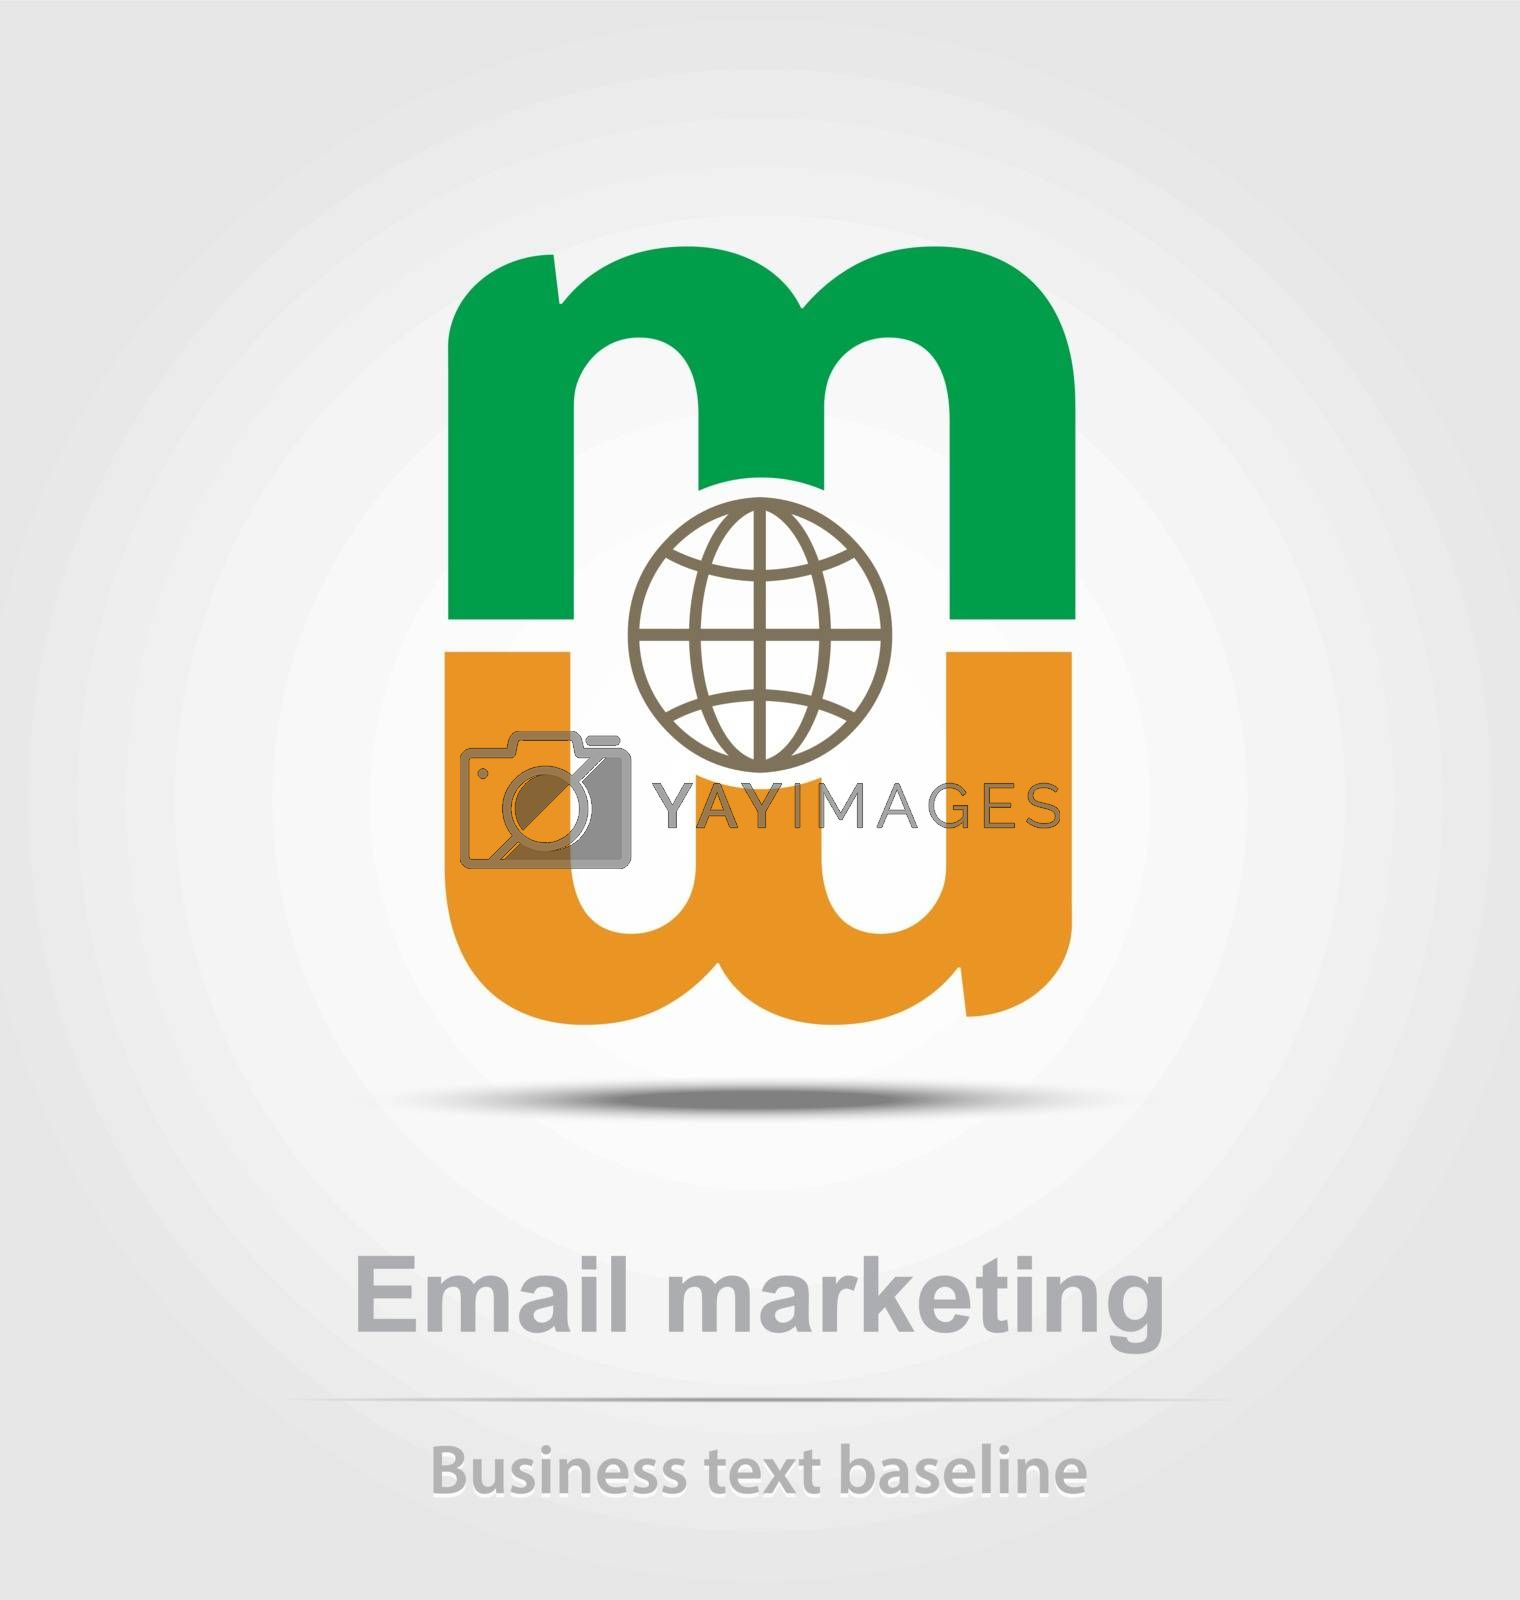 Email marketing business icon for creative design